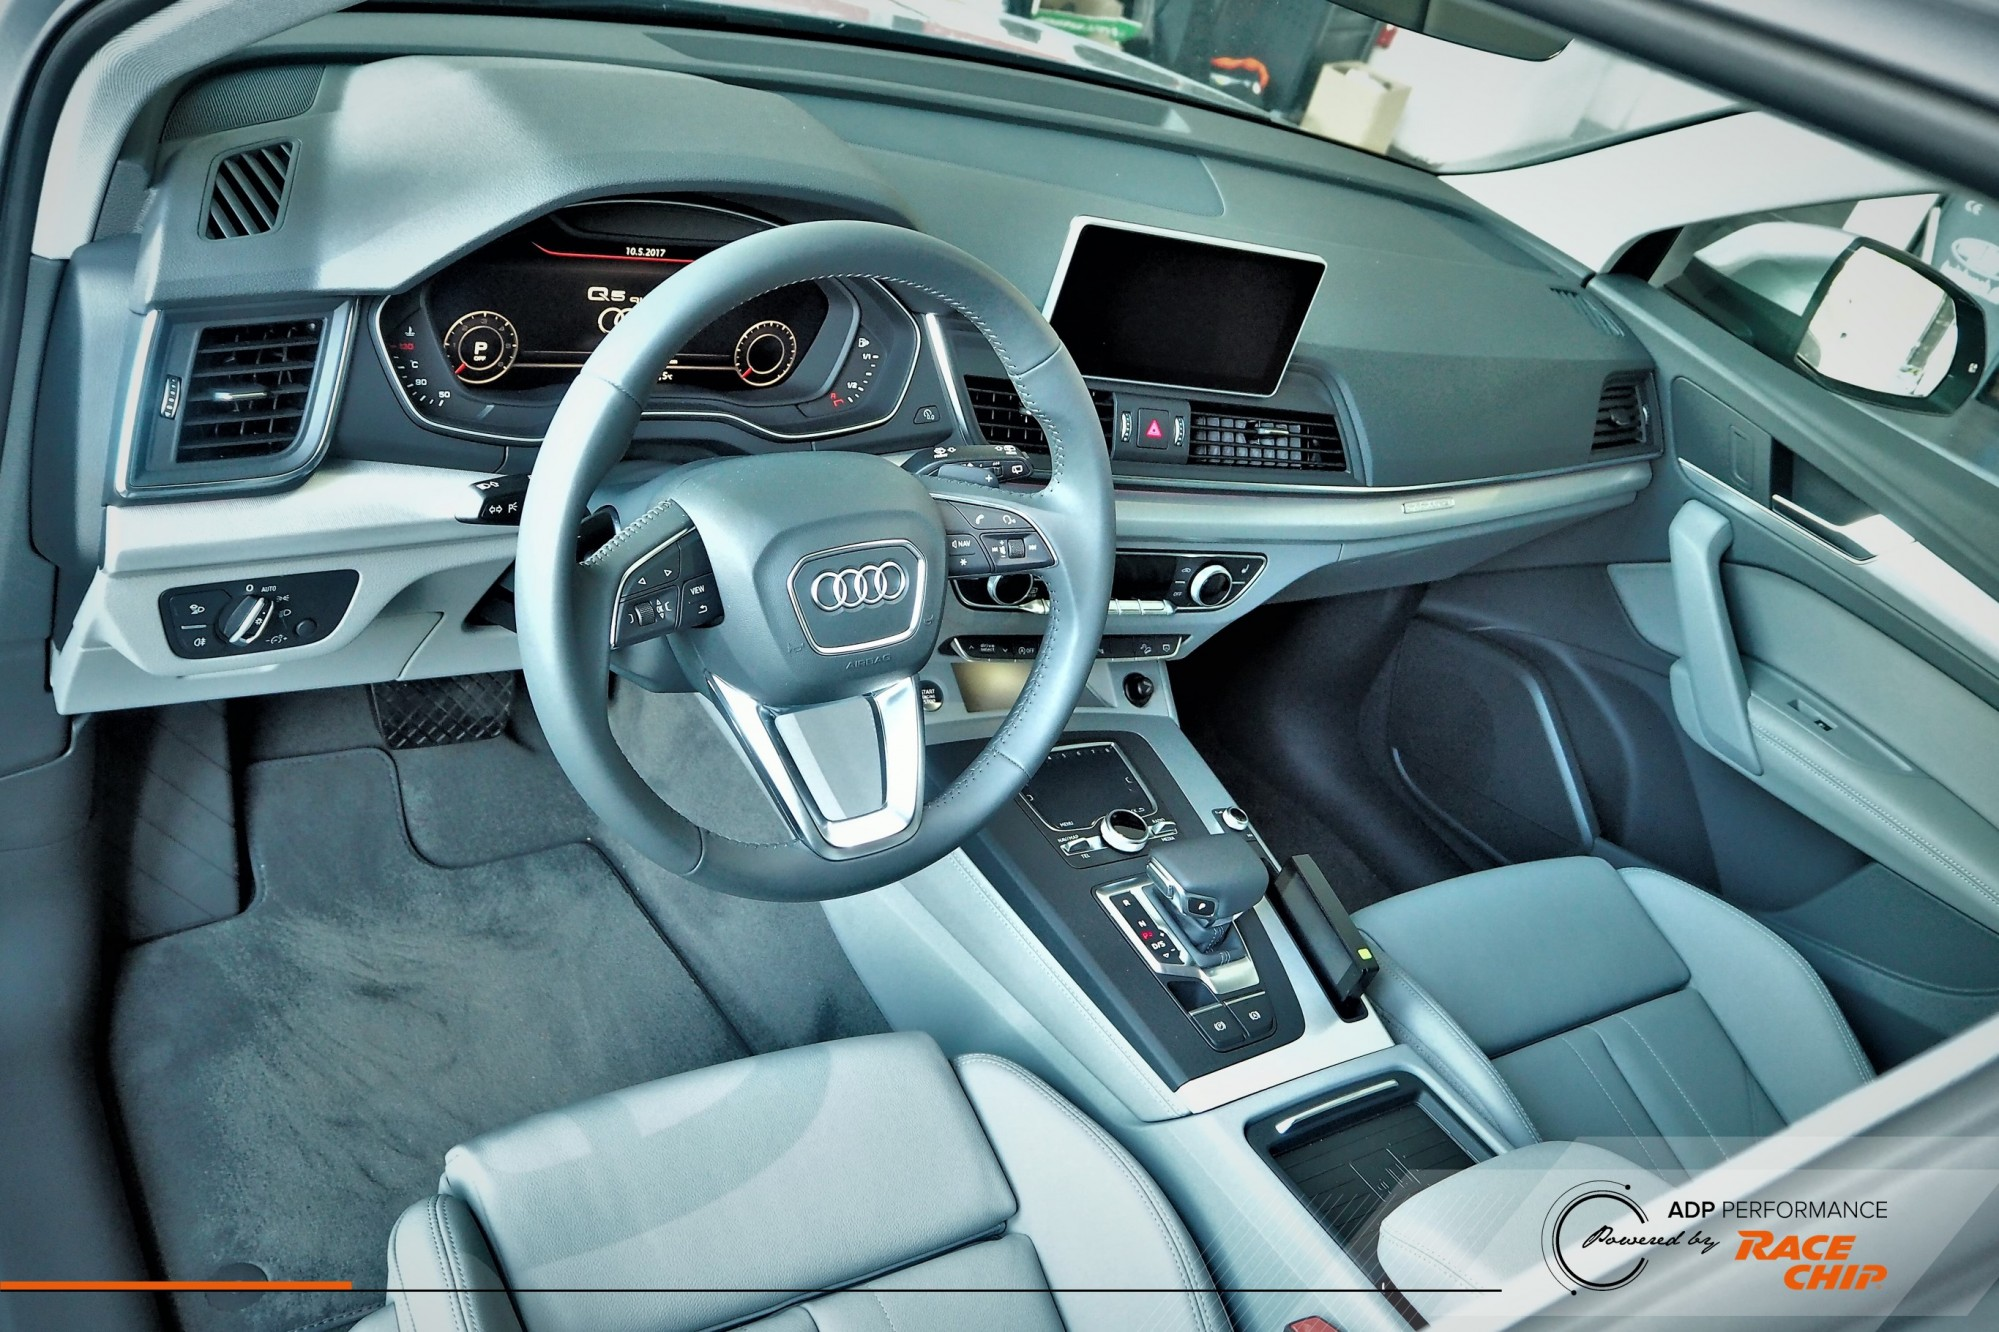 RaceChip Ultimate Connect Avignon - Audi Q5 (2017) 2.0 TDI 190cv - ADP Performance